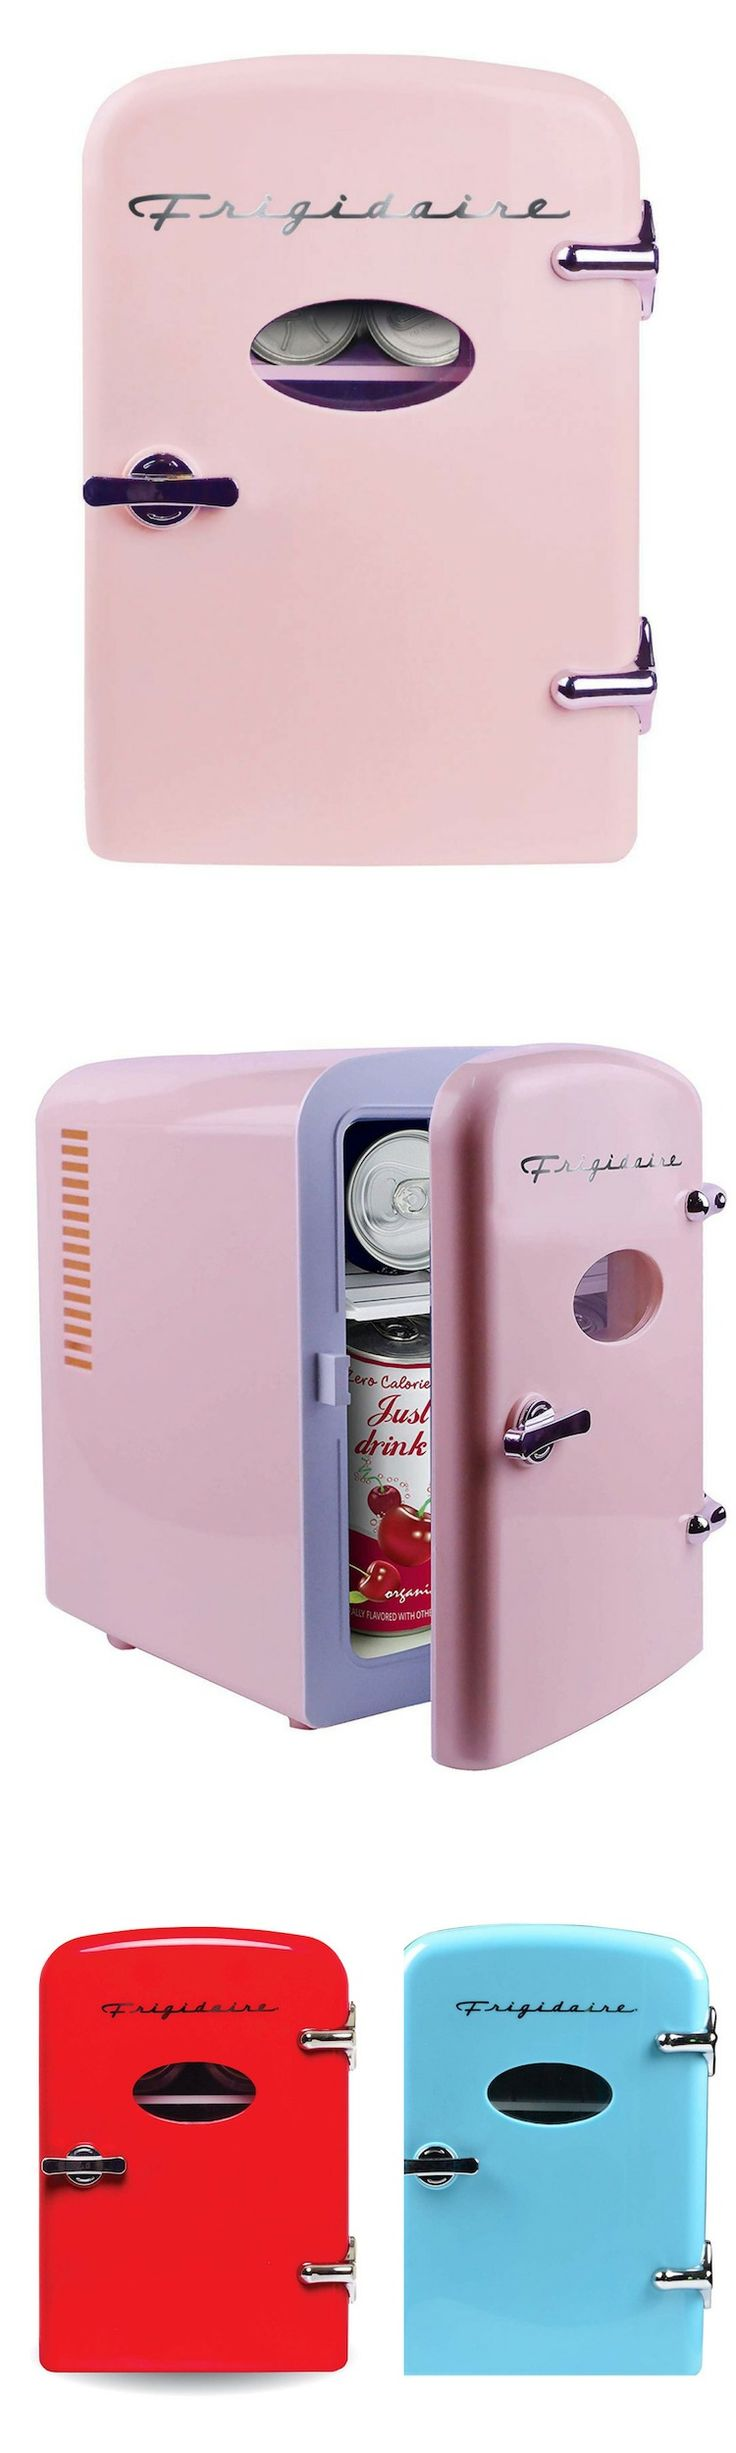 This mini fridge is not only for the cool drinks, you can